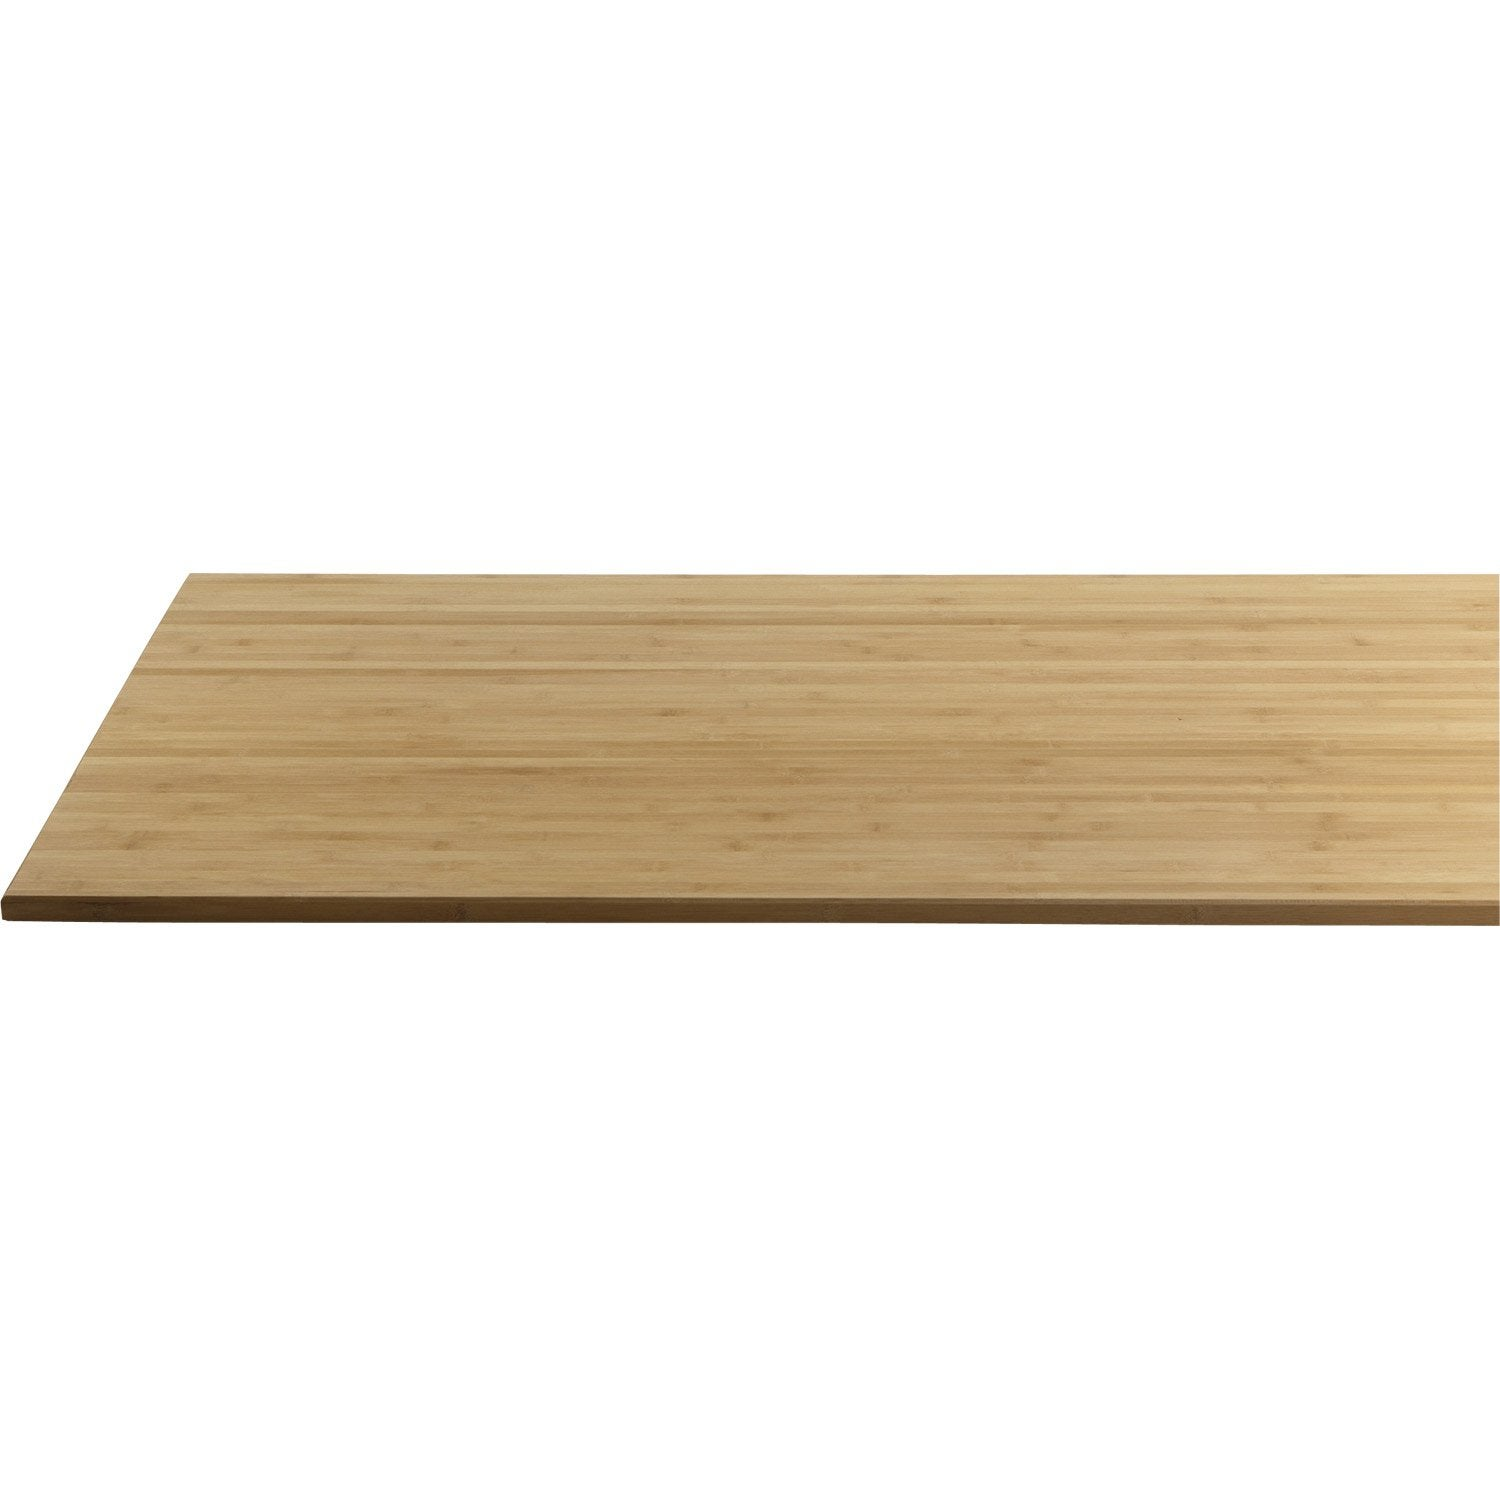 Plateau de table bambou x cm x mm - Leroy merlin tablette chene ...